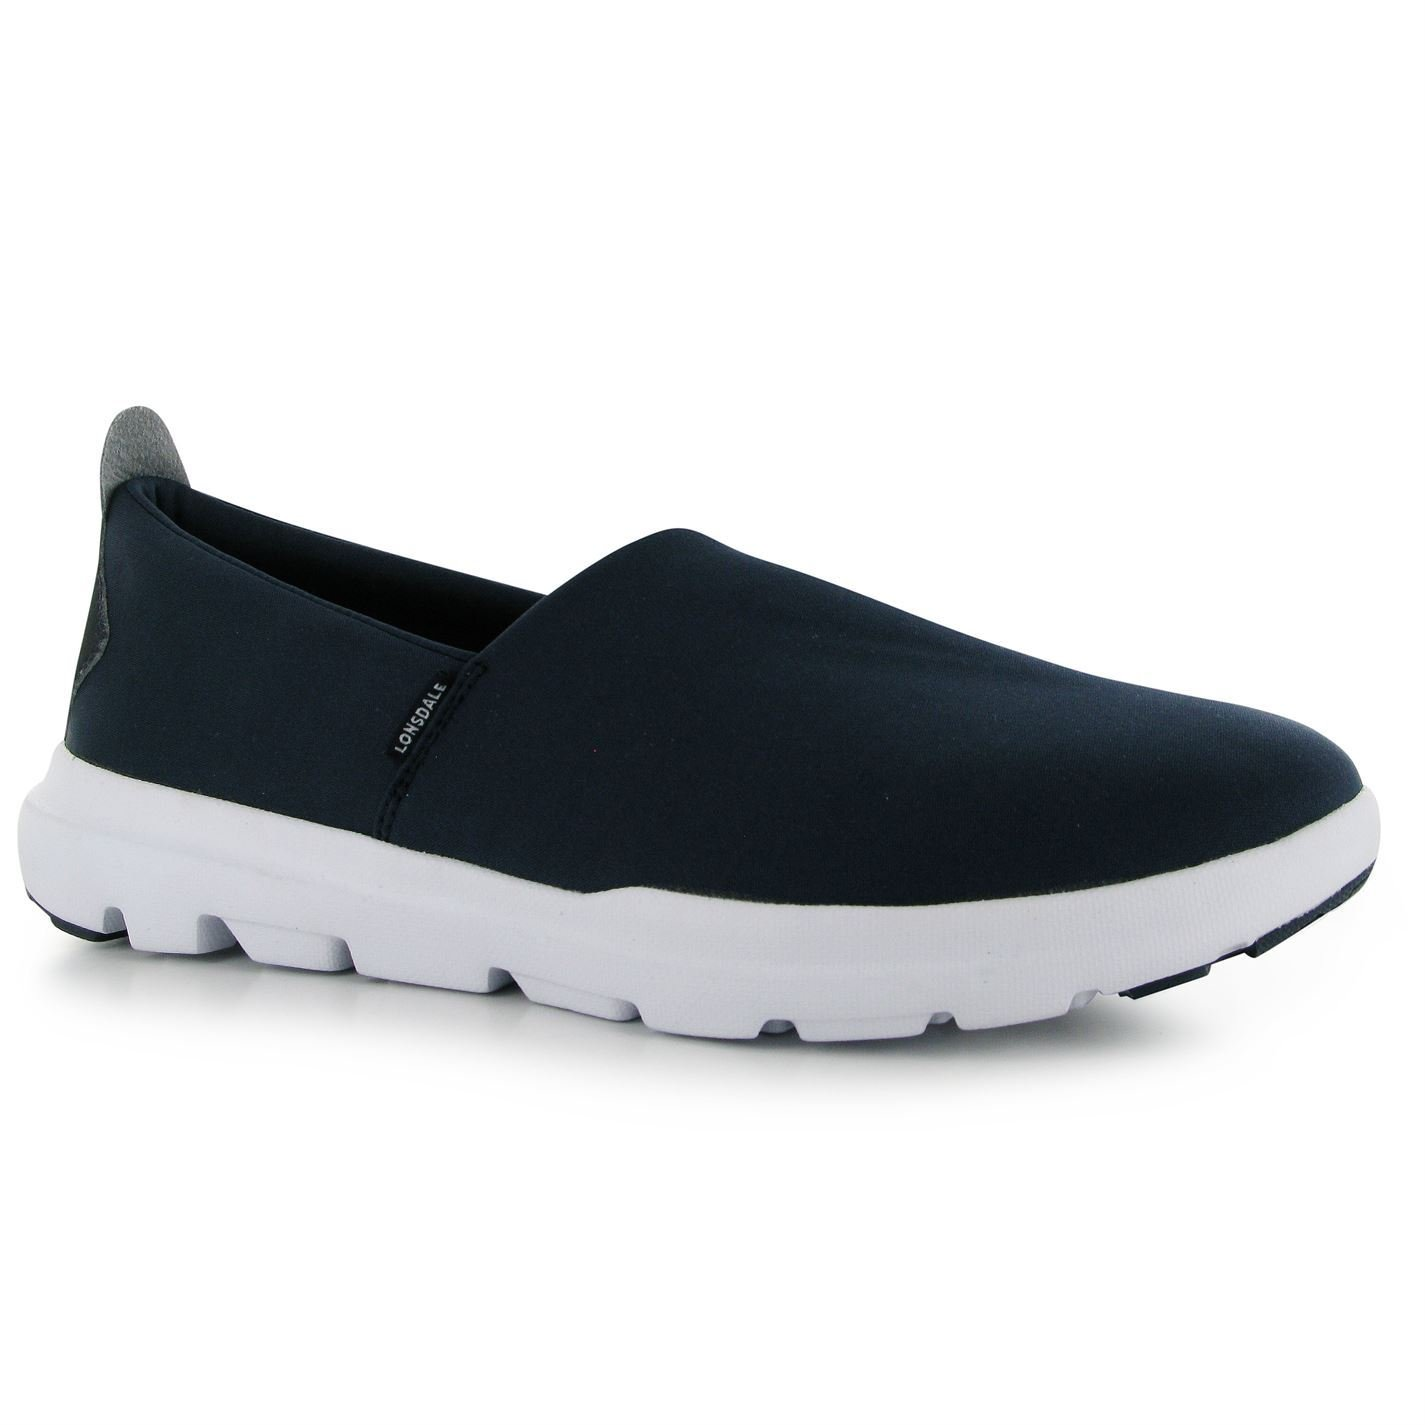 Lonsdale Mercury Slip On Trainers Mens Navy Casual Sneakers Shoes Footwear:  Amazon.co.uk: Sports & Outdoors